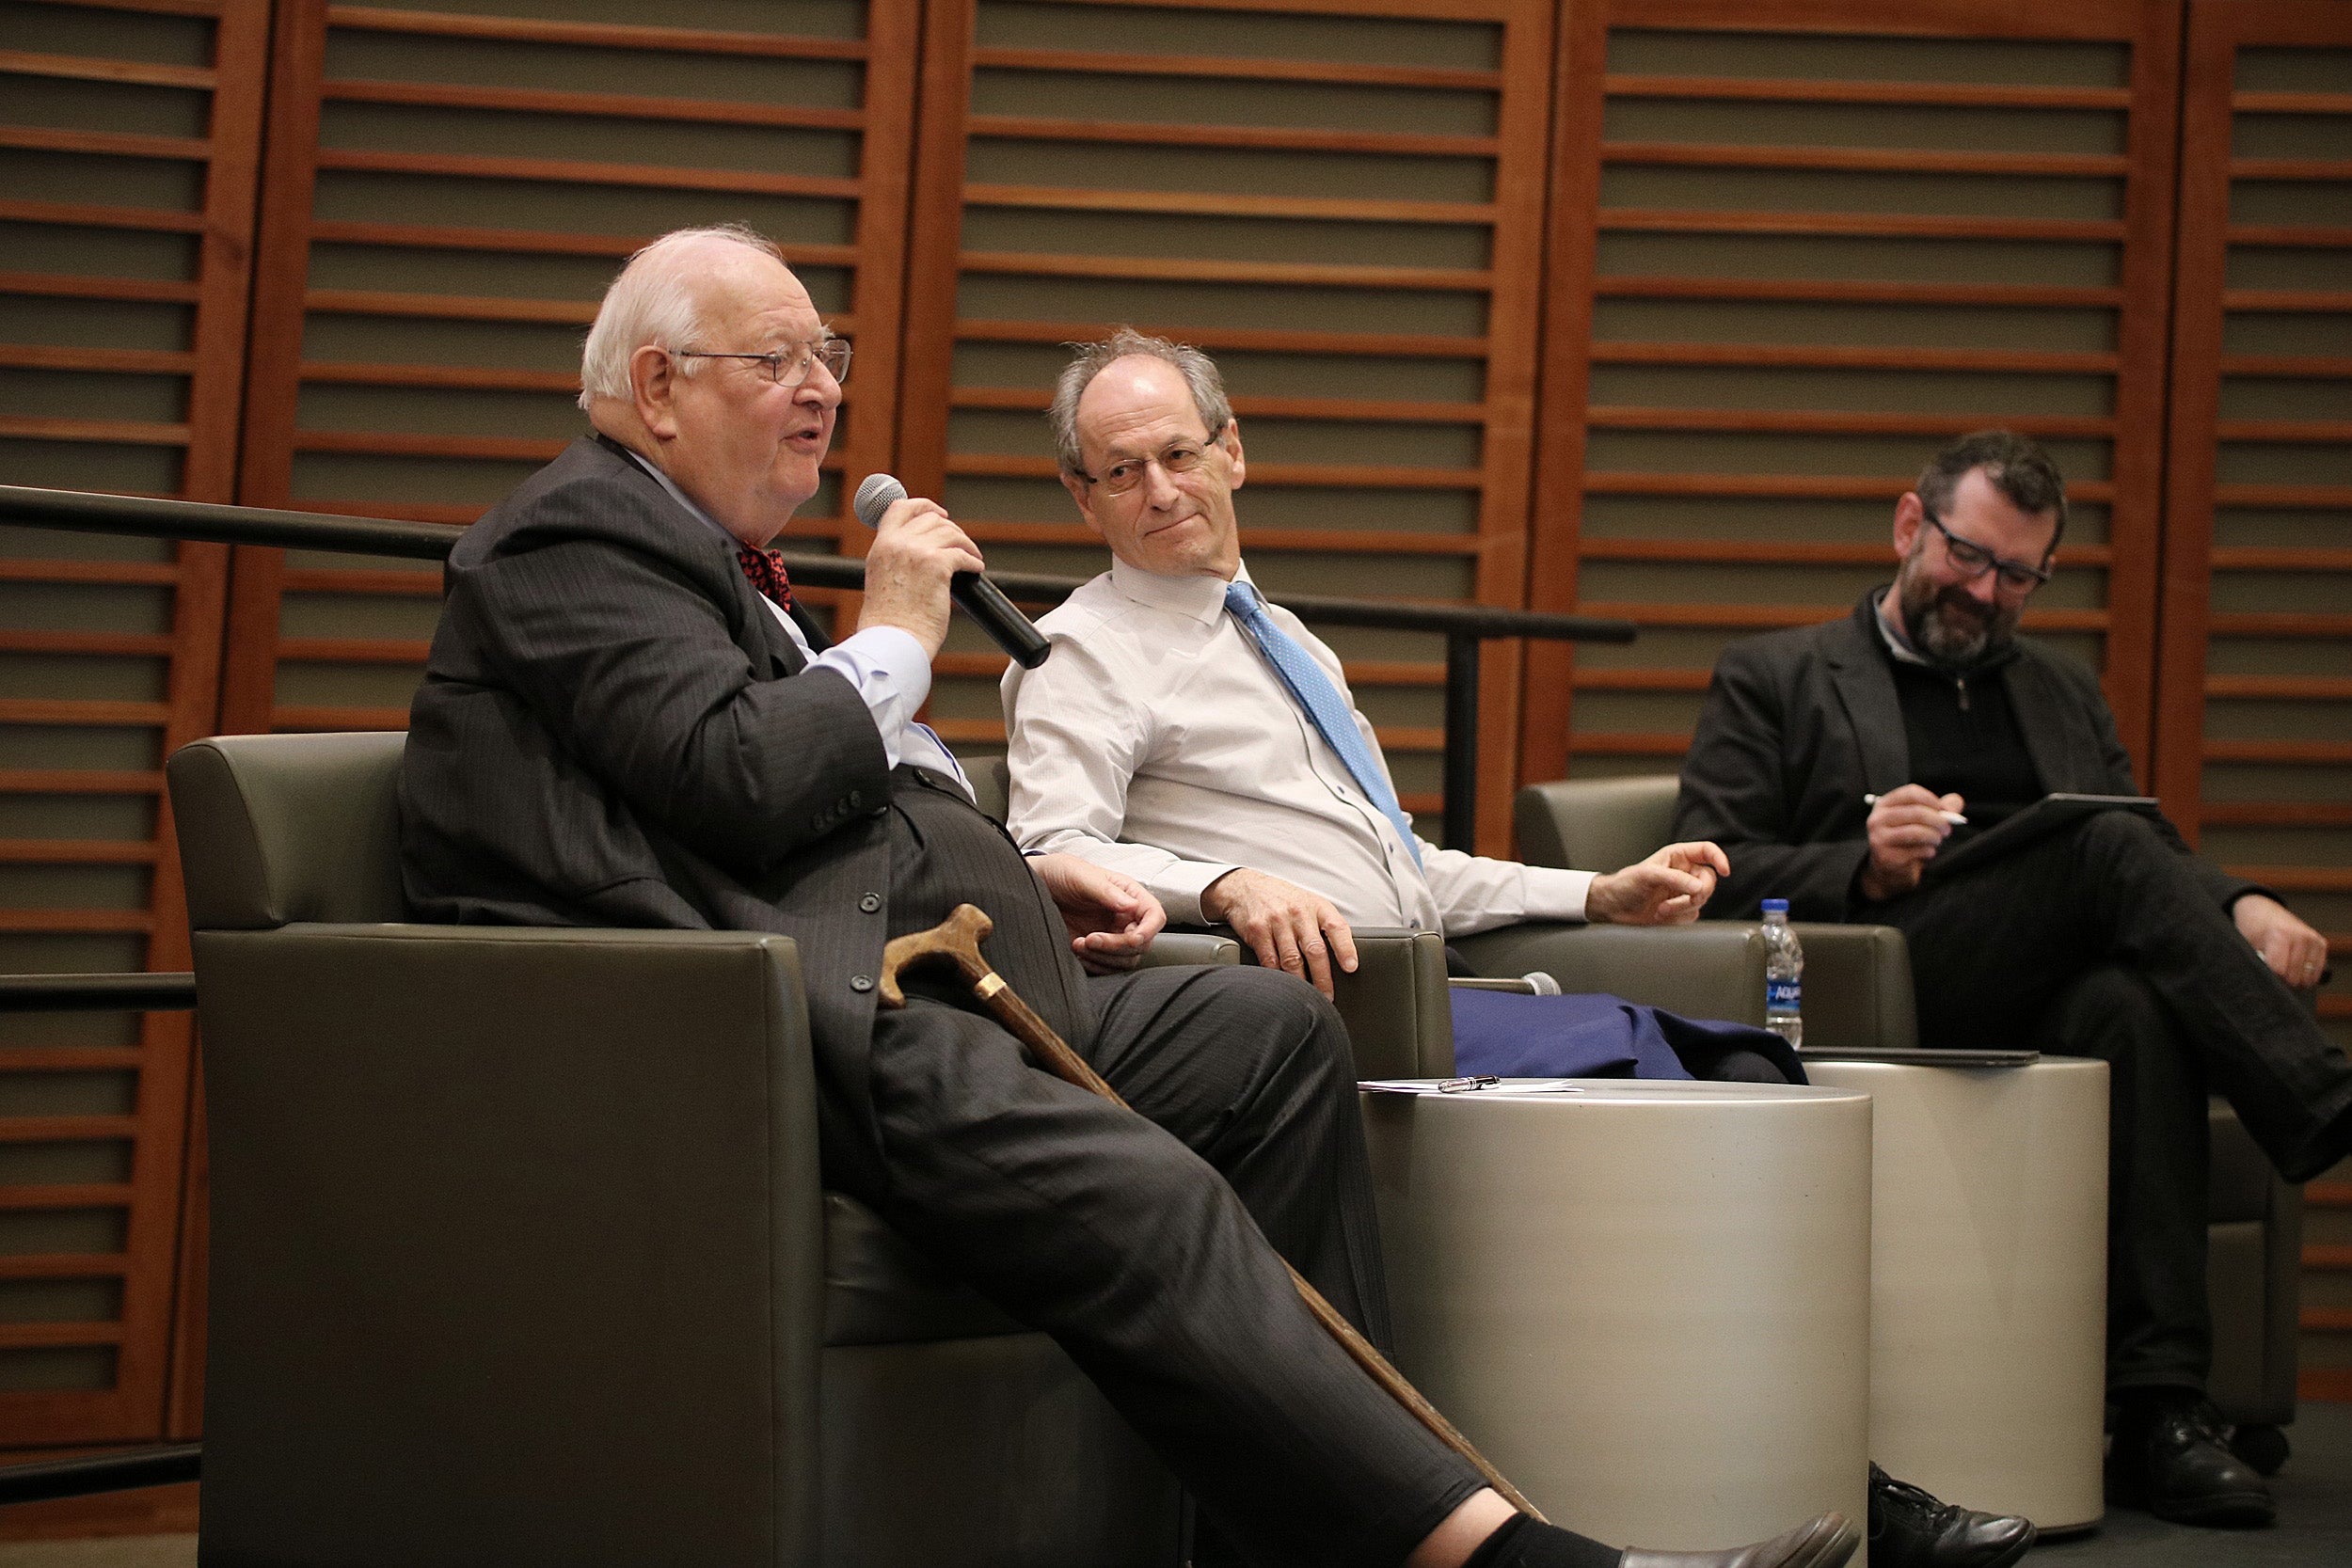 Angus Deaton (from left), epidemiologist Michael Marmot, and Professor Jason Beckfield